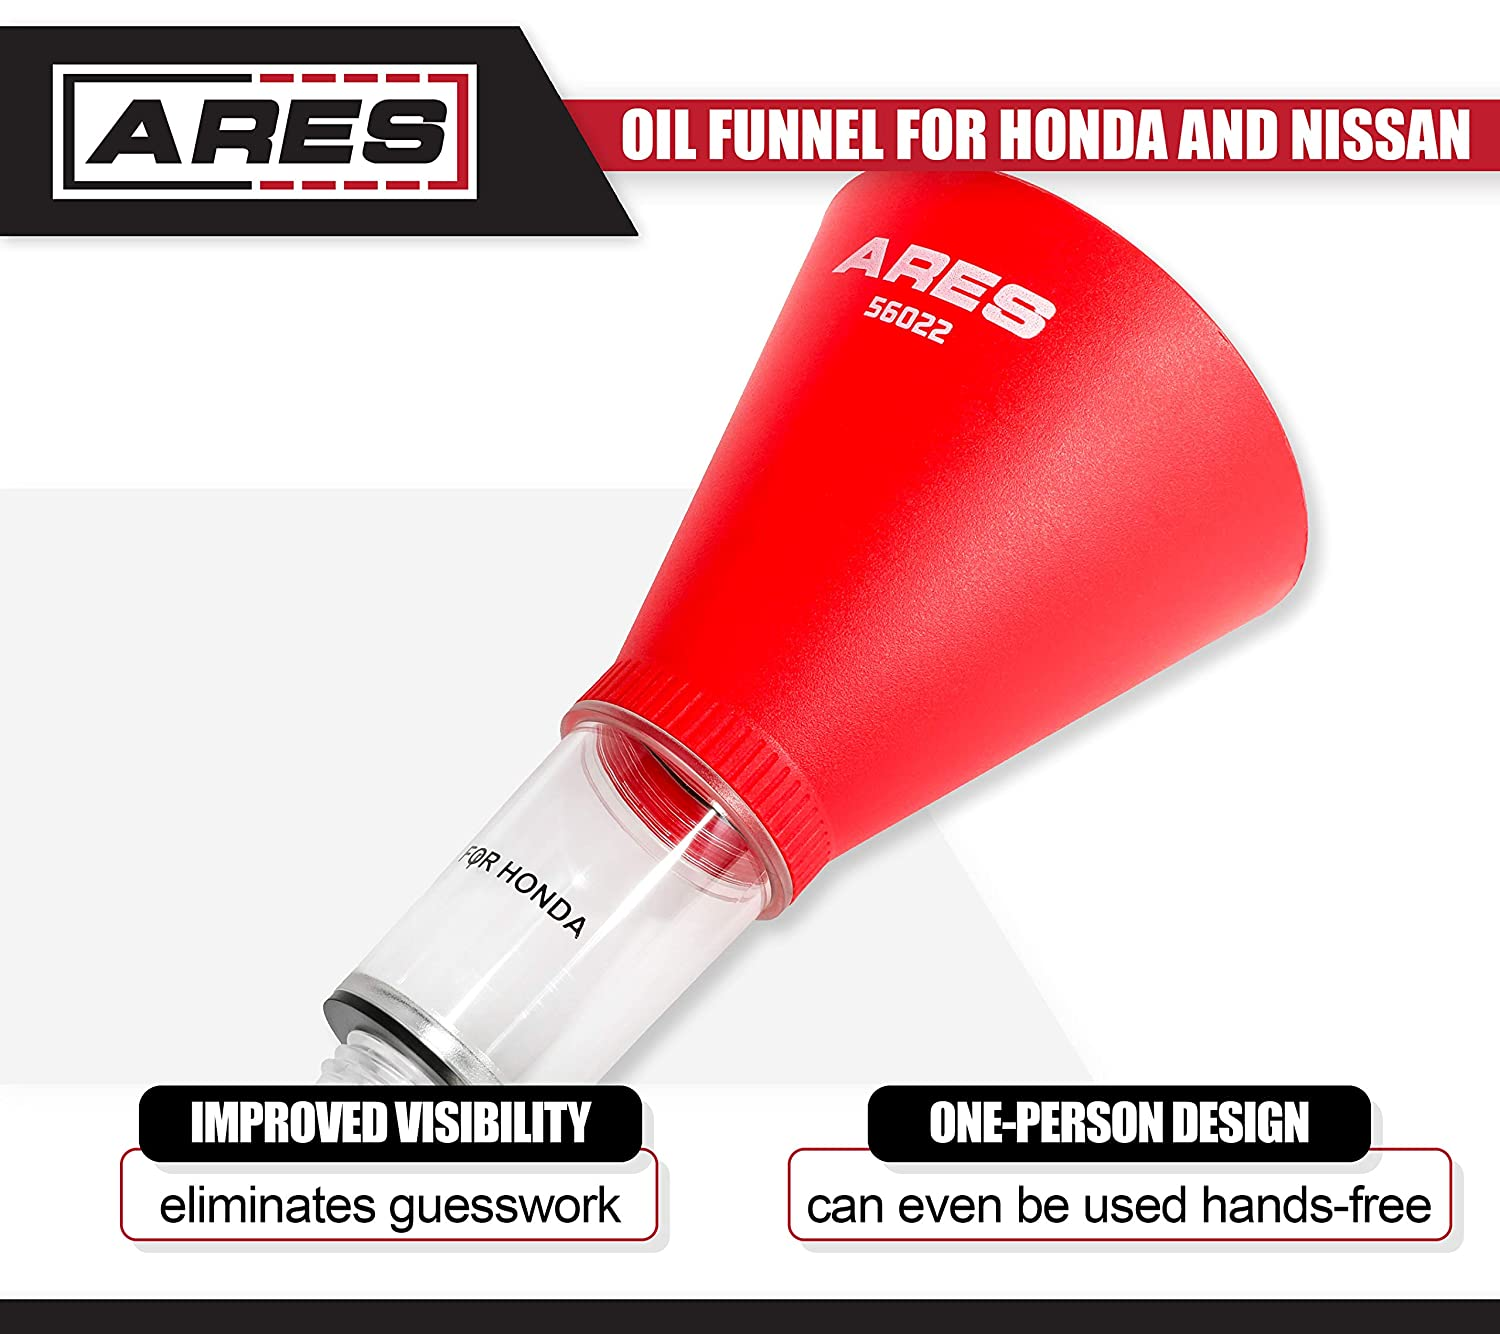 Easy to Use 1-Person Design Oil Funnel for Honda and Nissan ARES 56022 Fits Multiple Applications Spill-Free Oil Filling